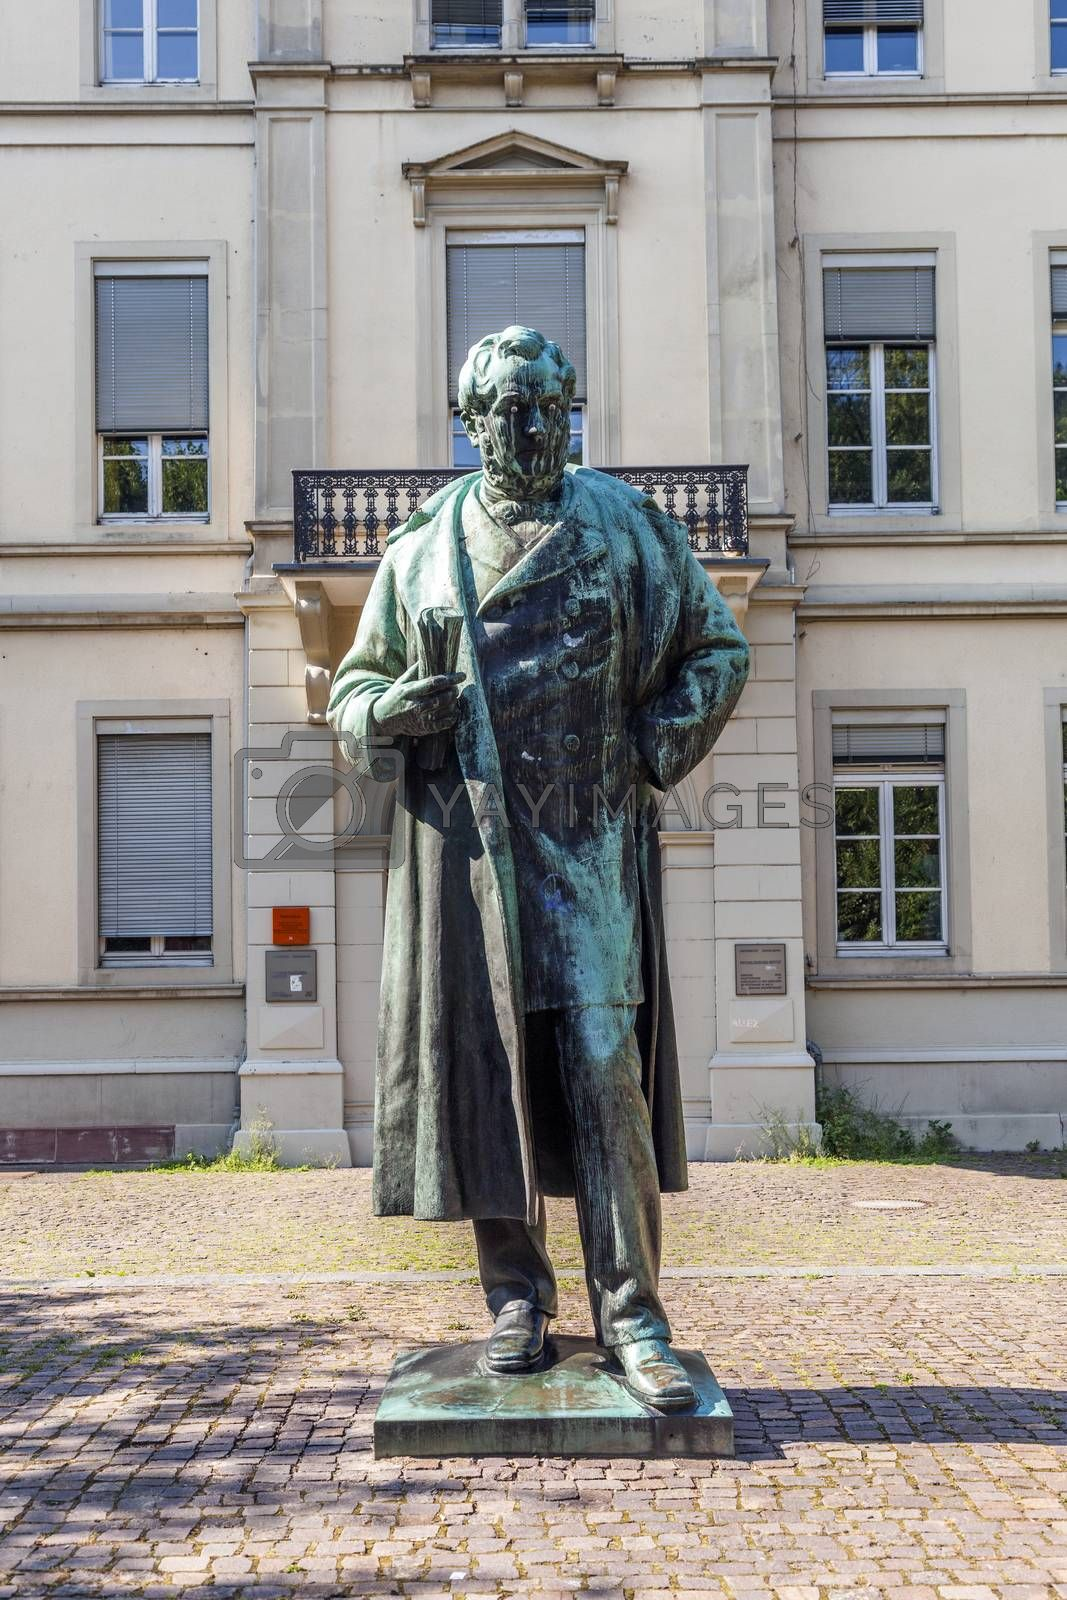 HEIDELBERG, GERMANY - JULY 7, 2013: statue of Robert Wilhelm Bunsen in Heidelberg, Germany. In 1852 Bunsen became professor for chemics at the  Ruprecht-Karl university in Heidelberg.